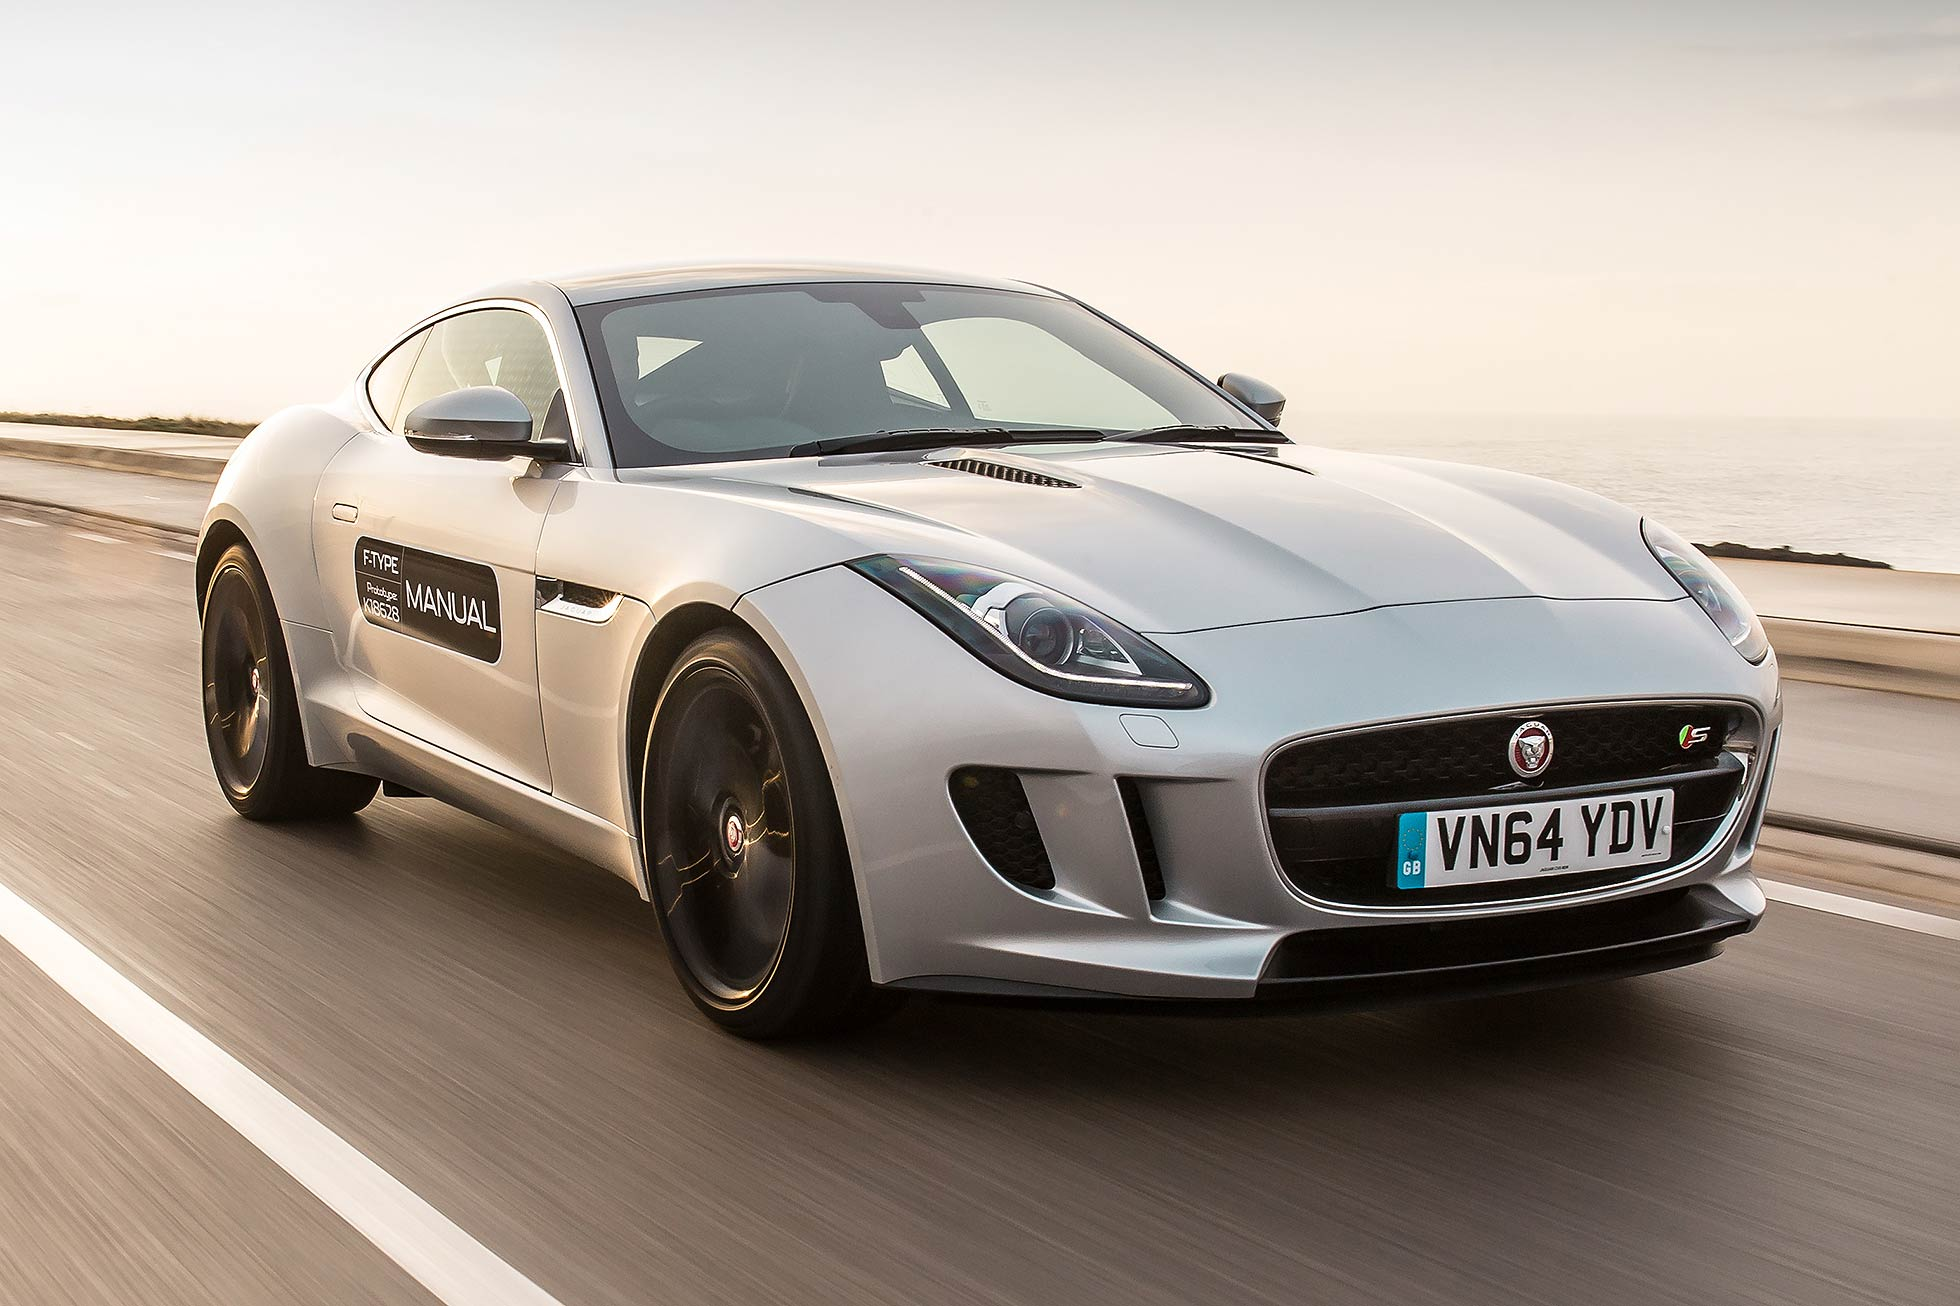 Jaguar F-Type manual 2015